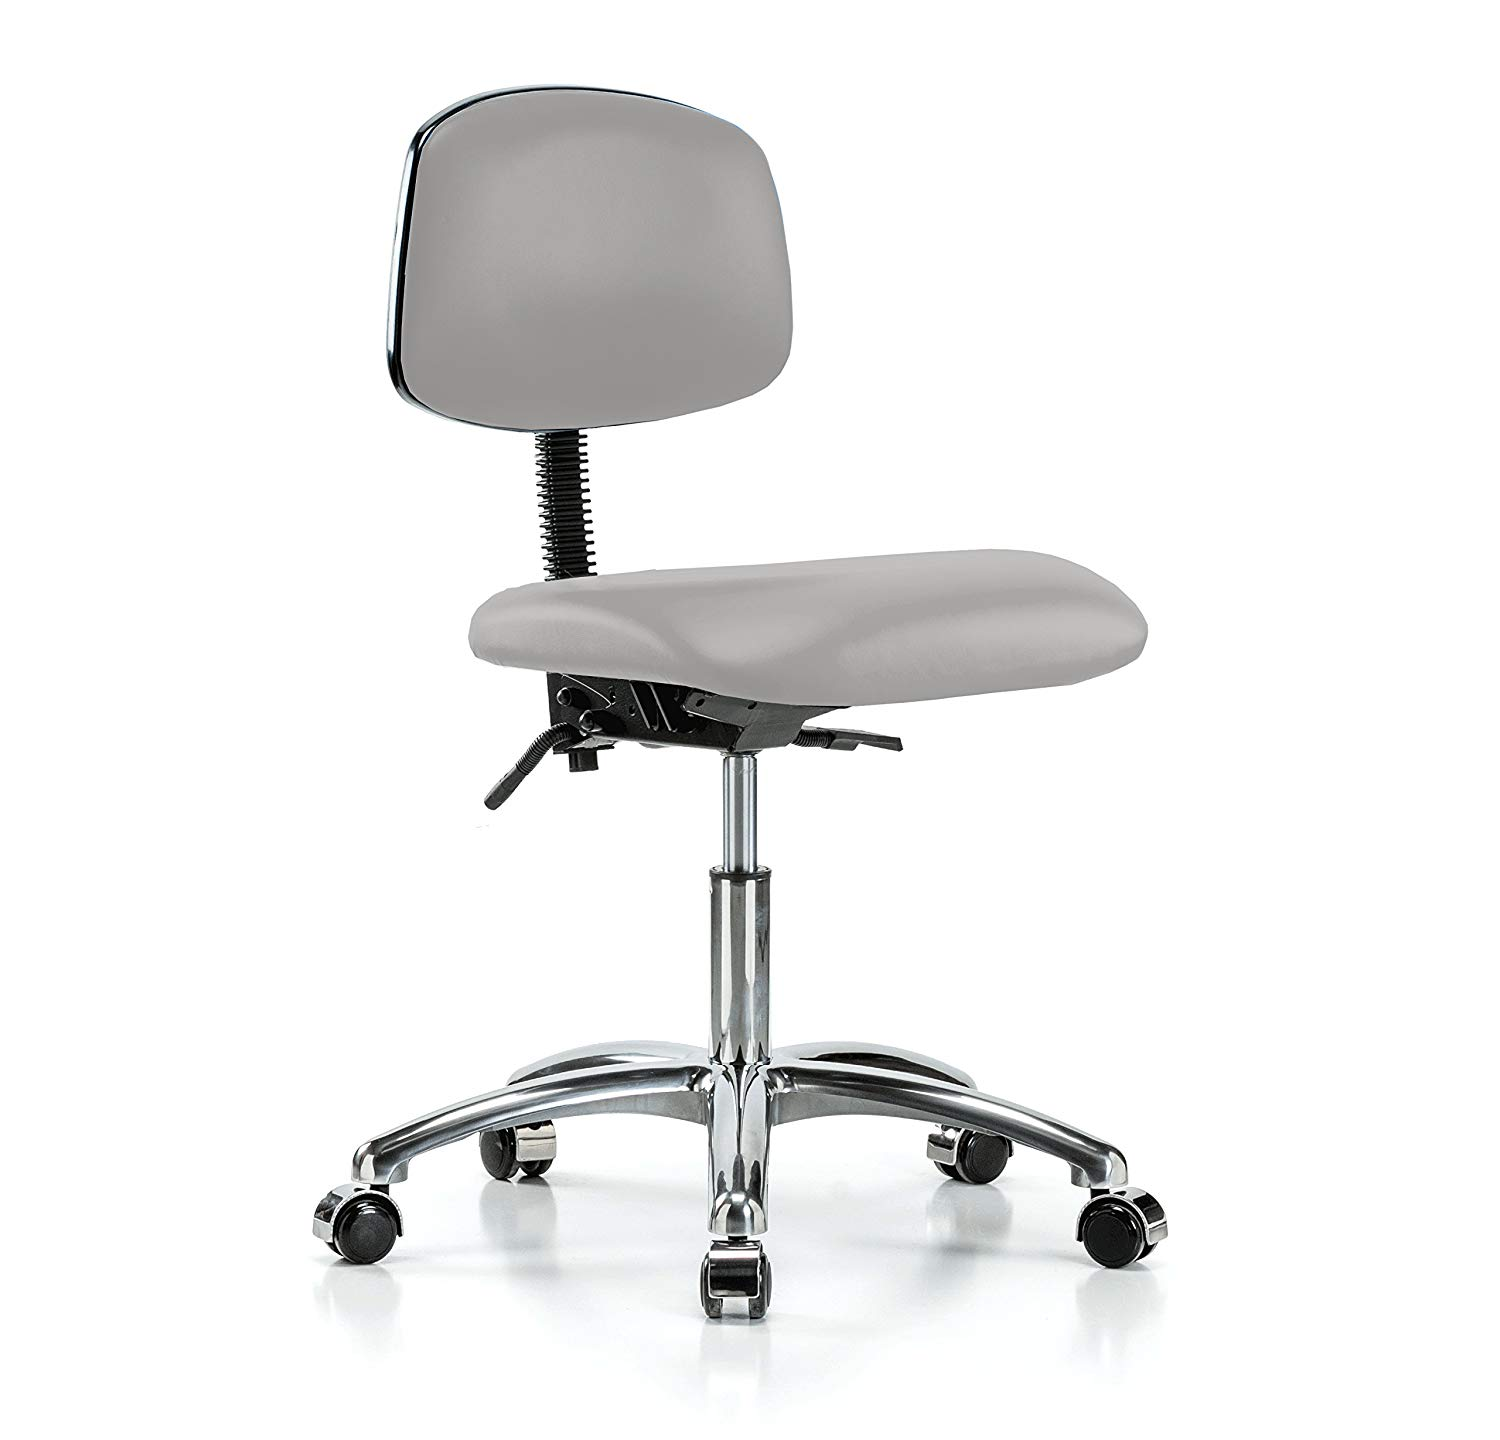 Perch Chrome Rolling Lab Chair with Adjustable Back Support for Hardwood or Tile Floors, Desk Height, Grey Vinyl